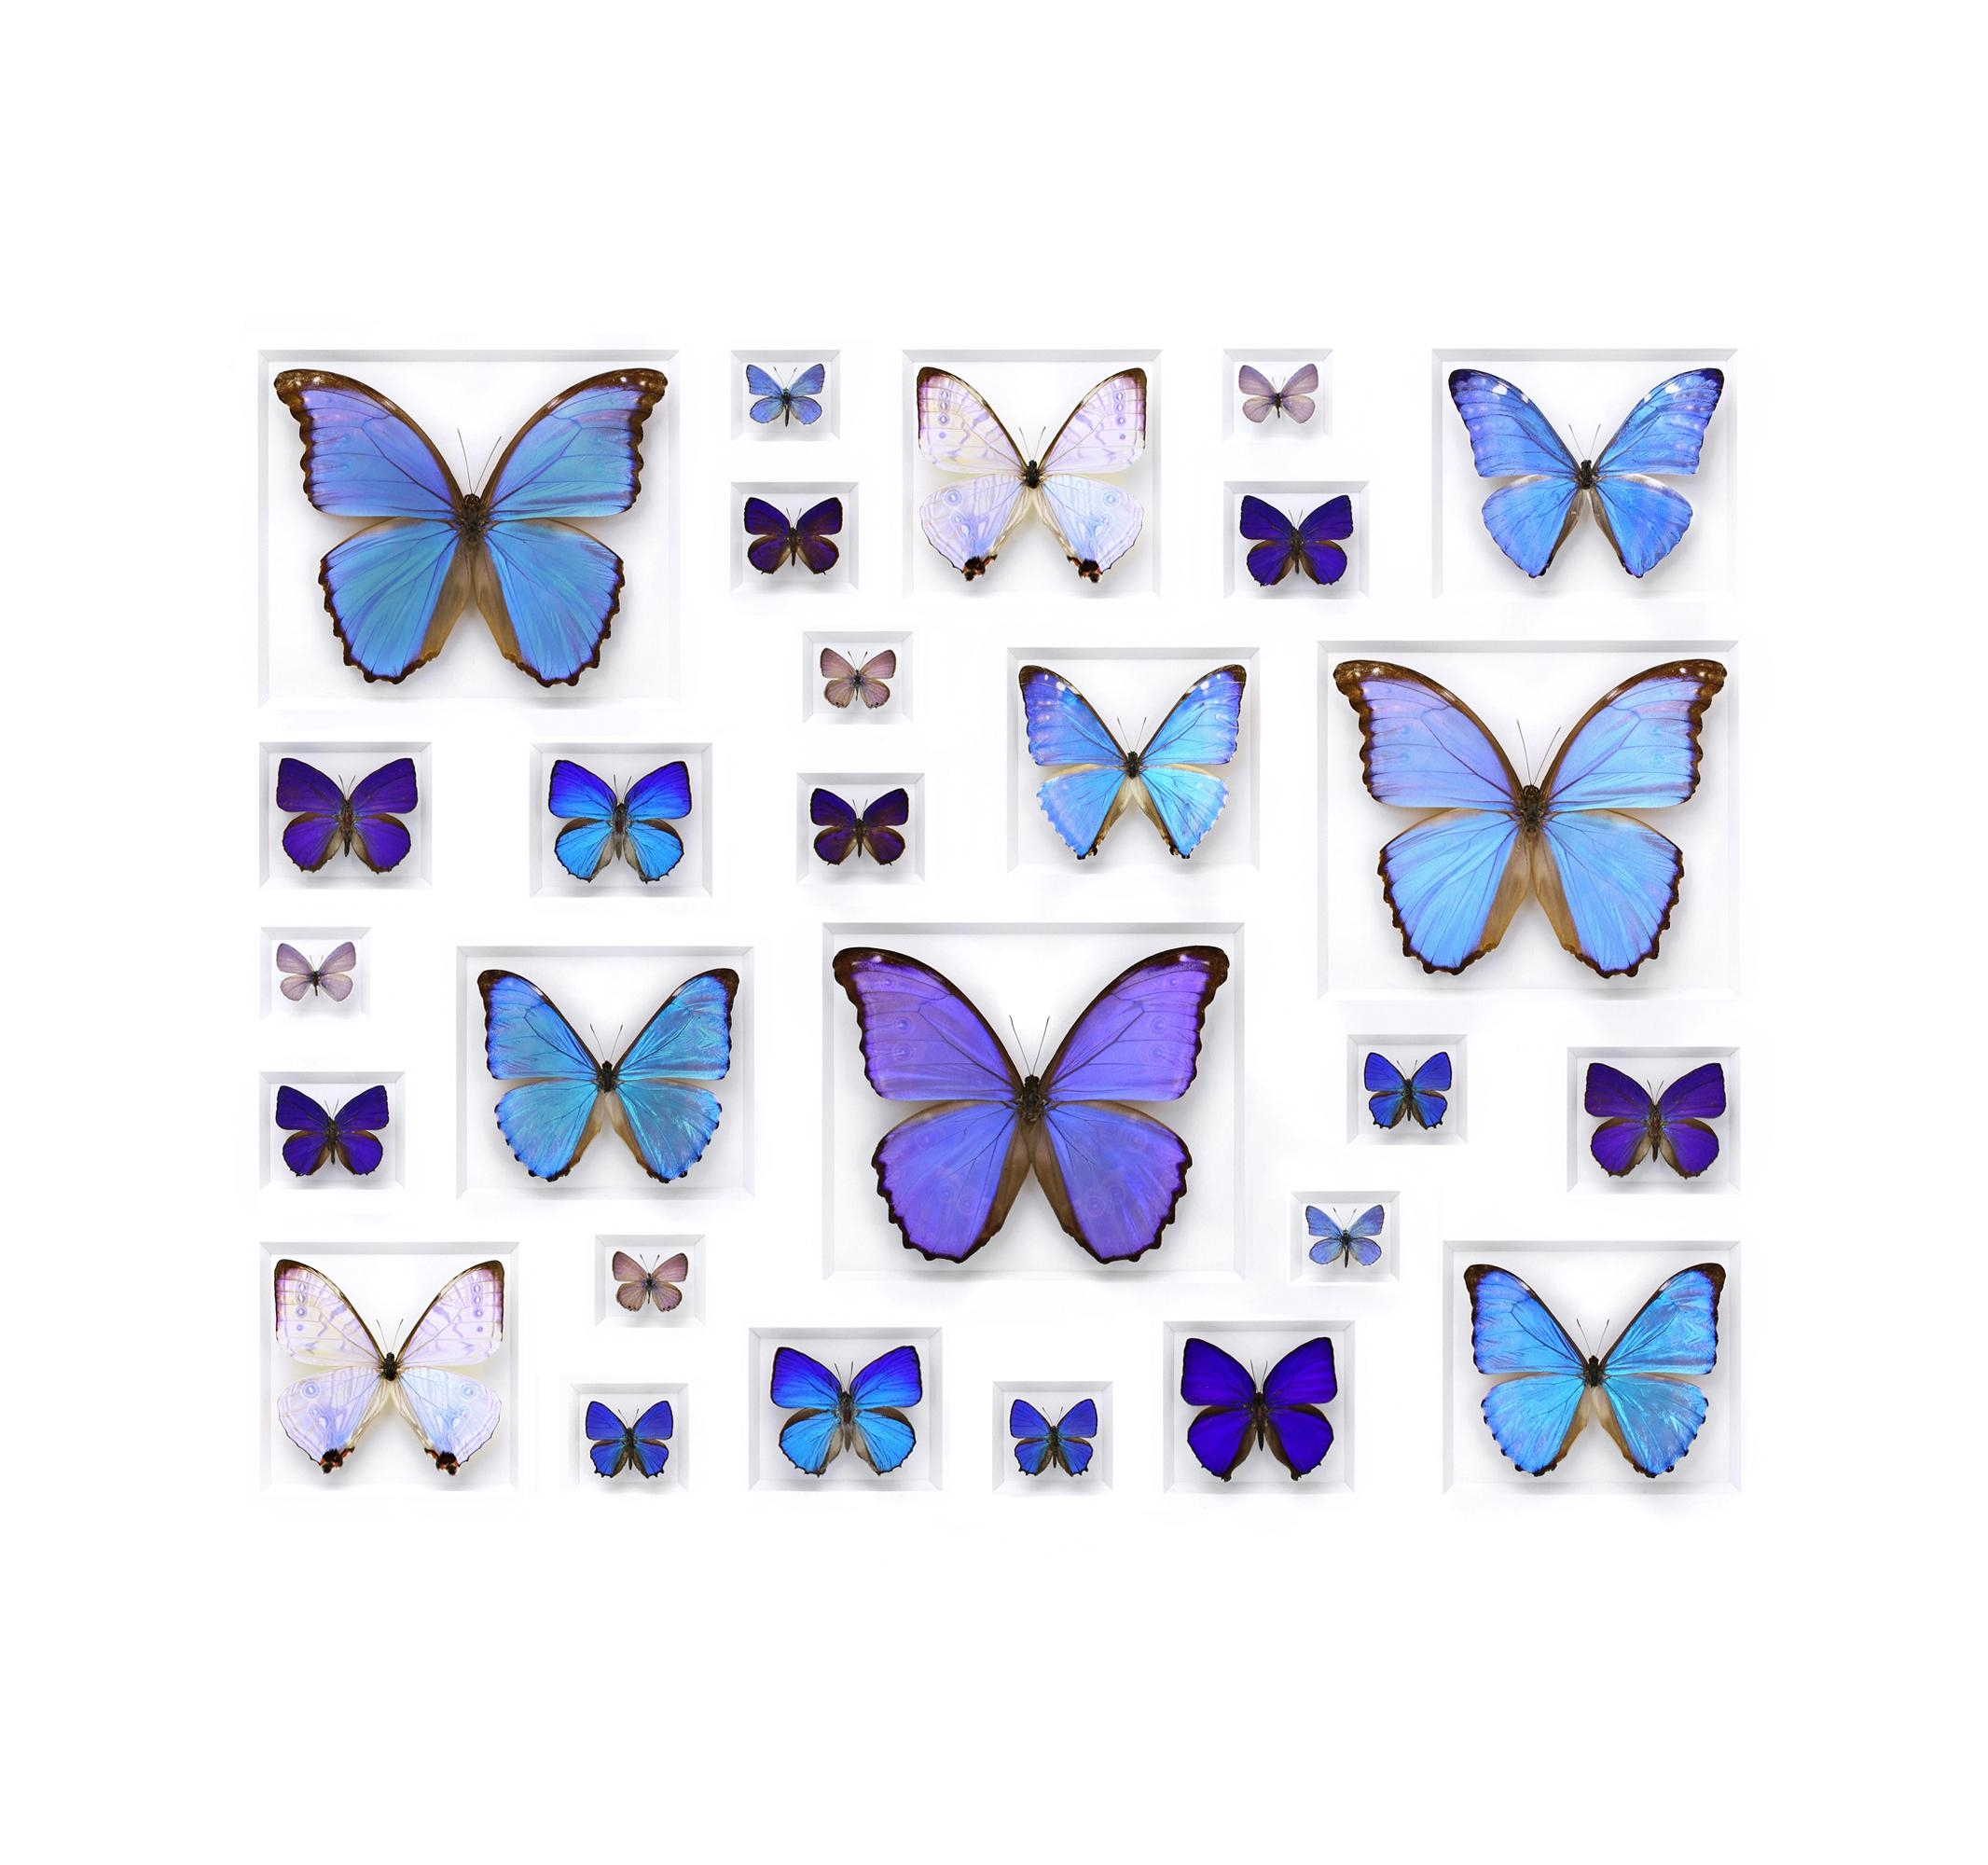 Pheromone Design | Christopher Marley Studio Throughout 3D Butterfly Framed Wall Art (View 18 of 20)